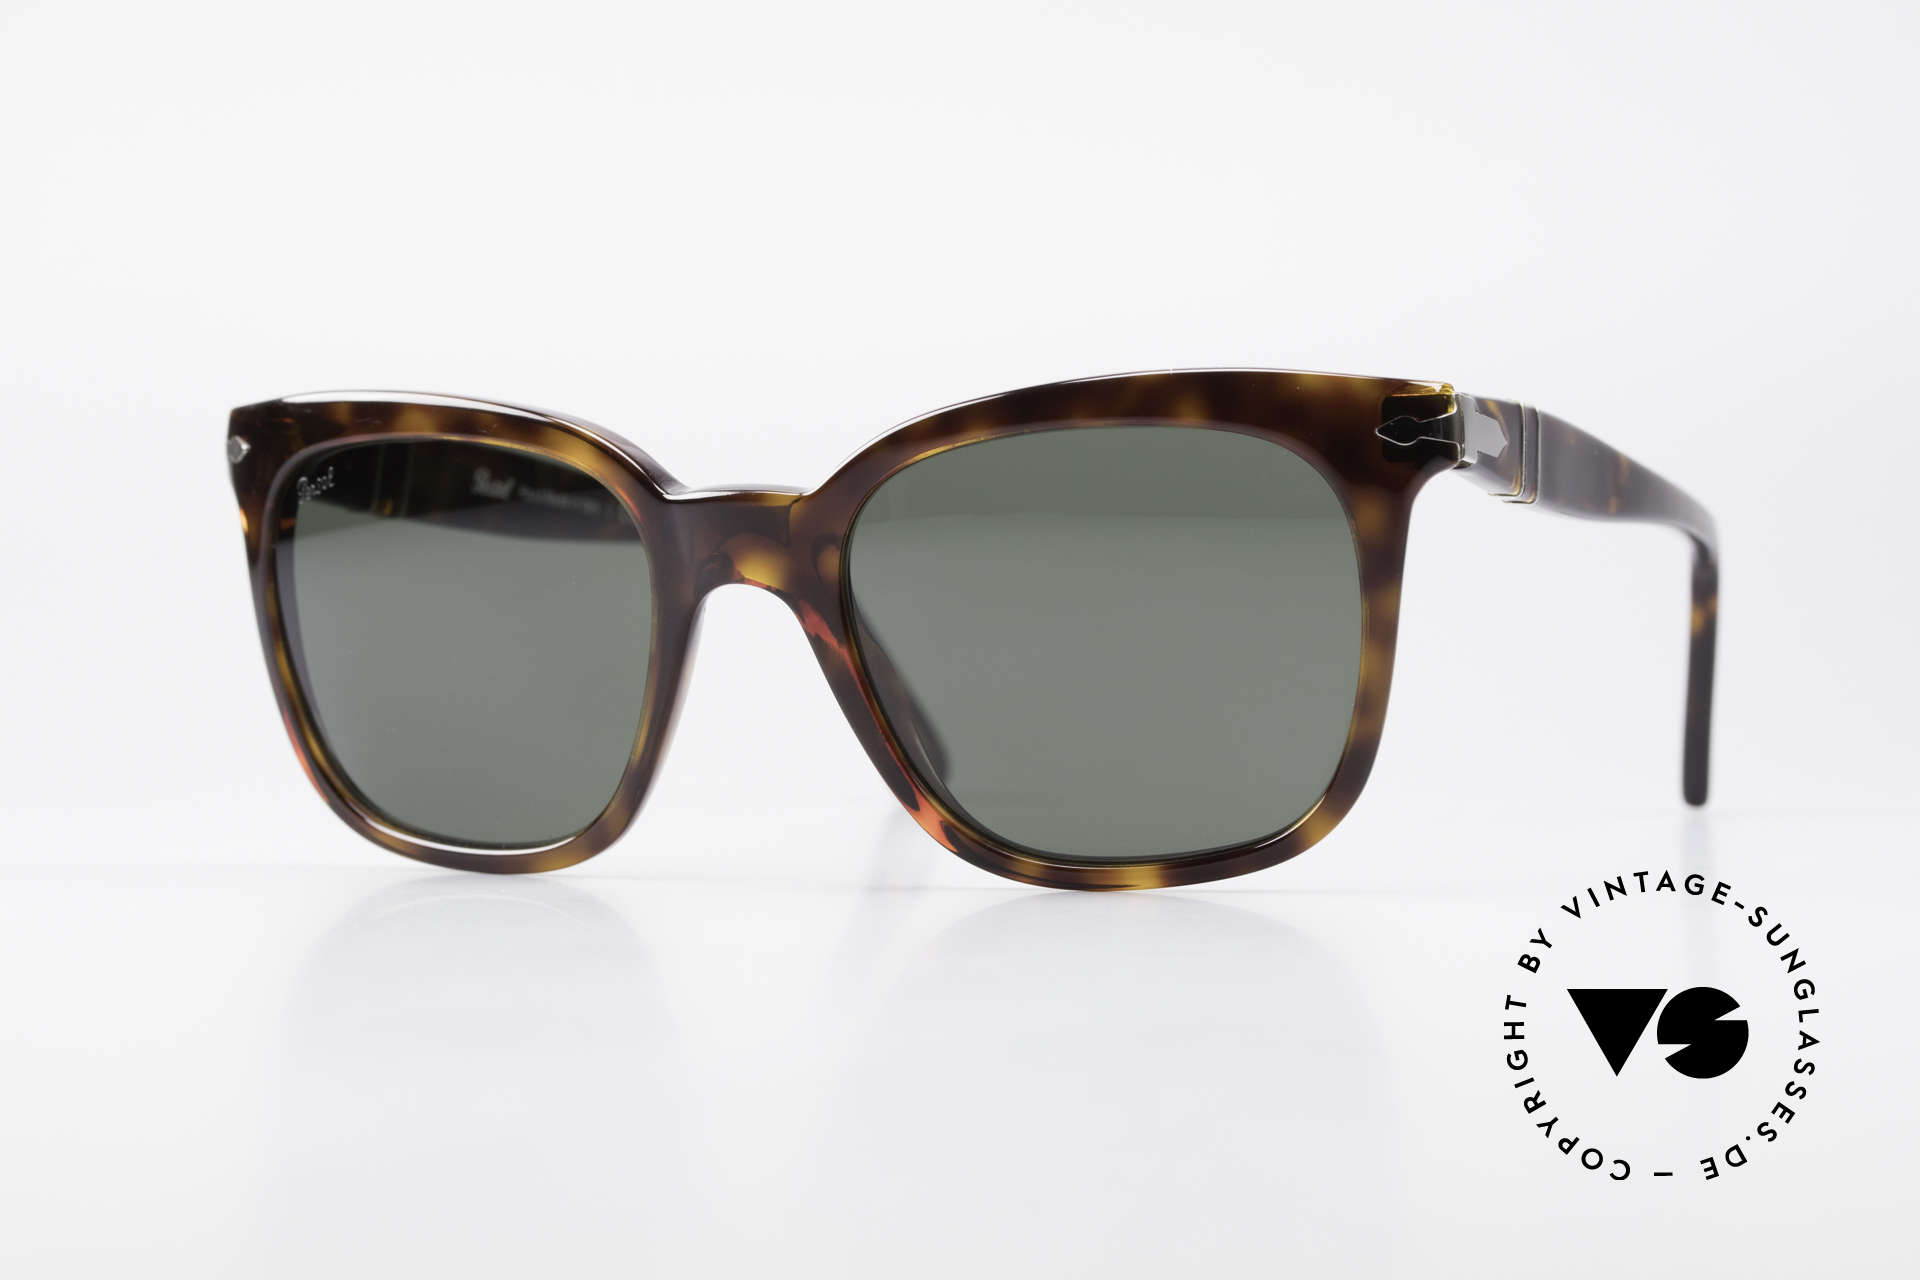 Persol 2999 Classic Ladies Sunglasses, model 2999: very elegant sunglasses by Persol, Made for Women